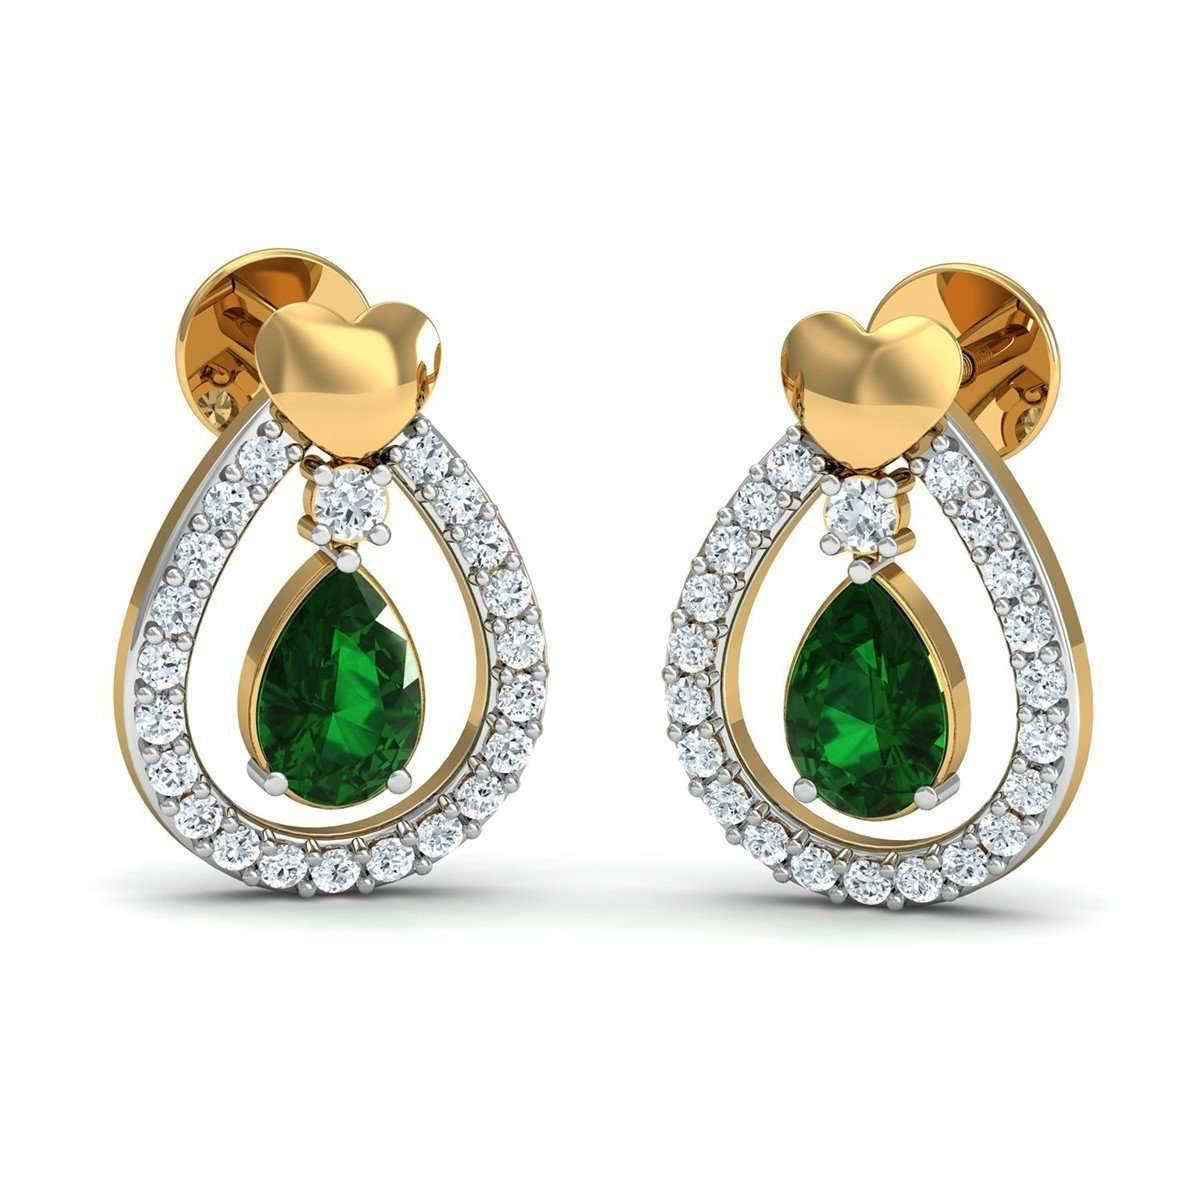 Diamoire Jewels Hand-hammered 10kt Yellow Gold Earrings with Pear Cut Emerald and Round Diamonds TIhmds544y